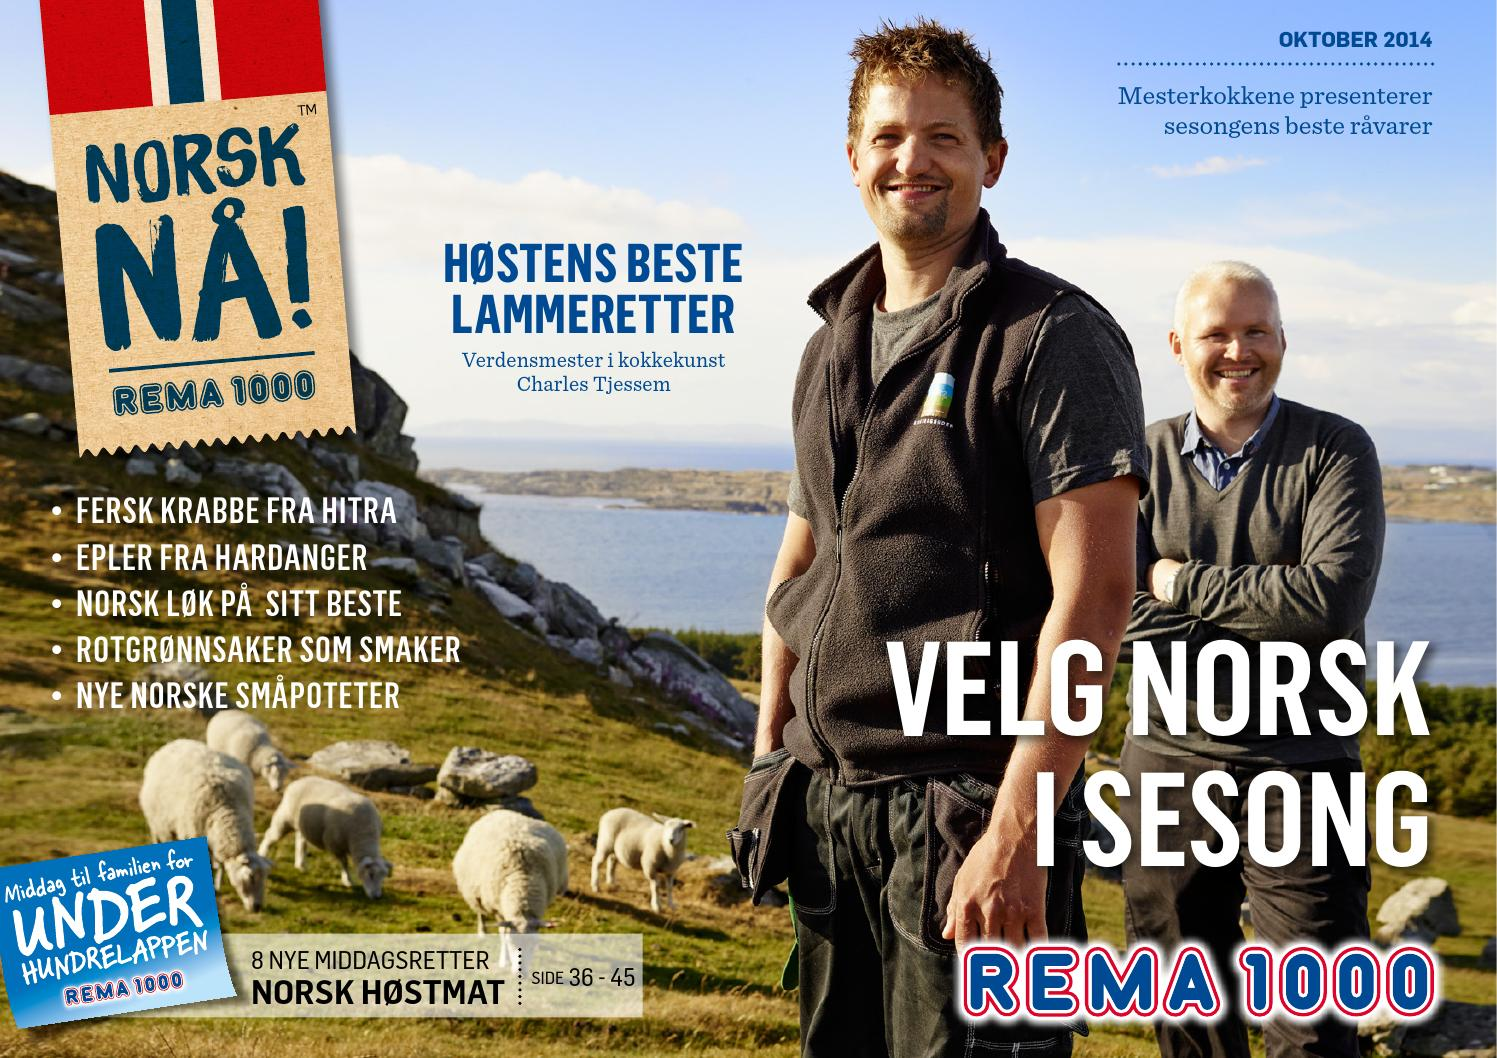 Rema 1000 Kp10 Norsk N 229 Magasin By Rema1000 Issuu